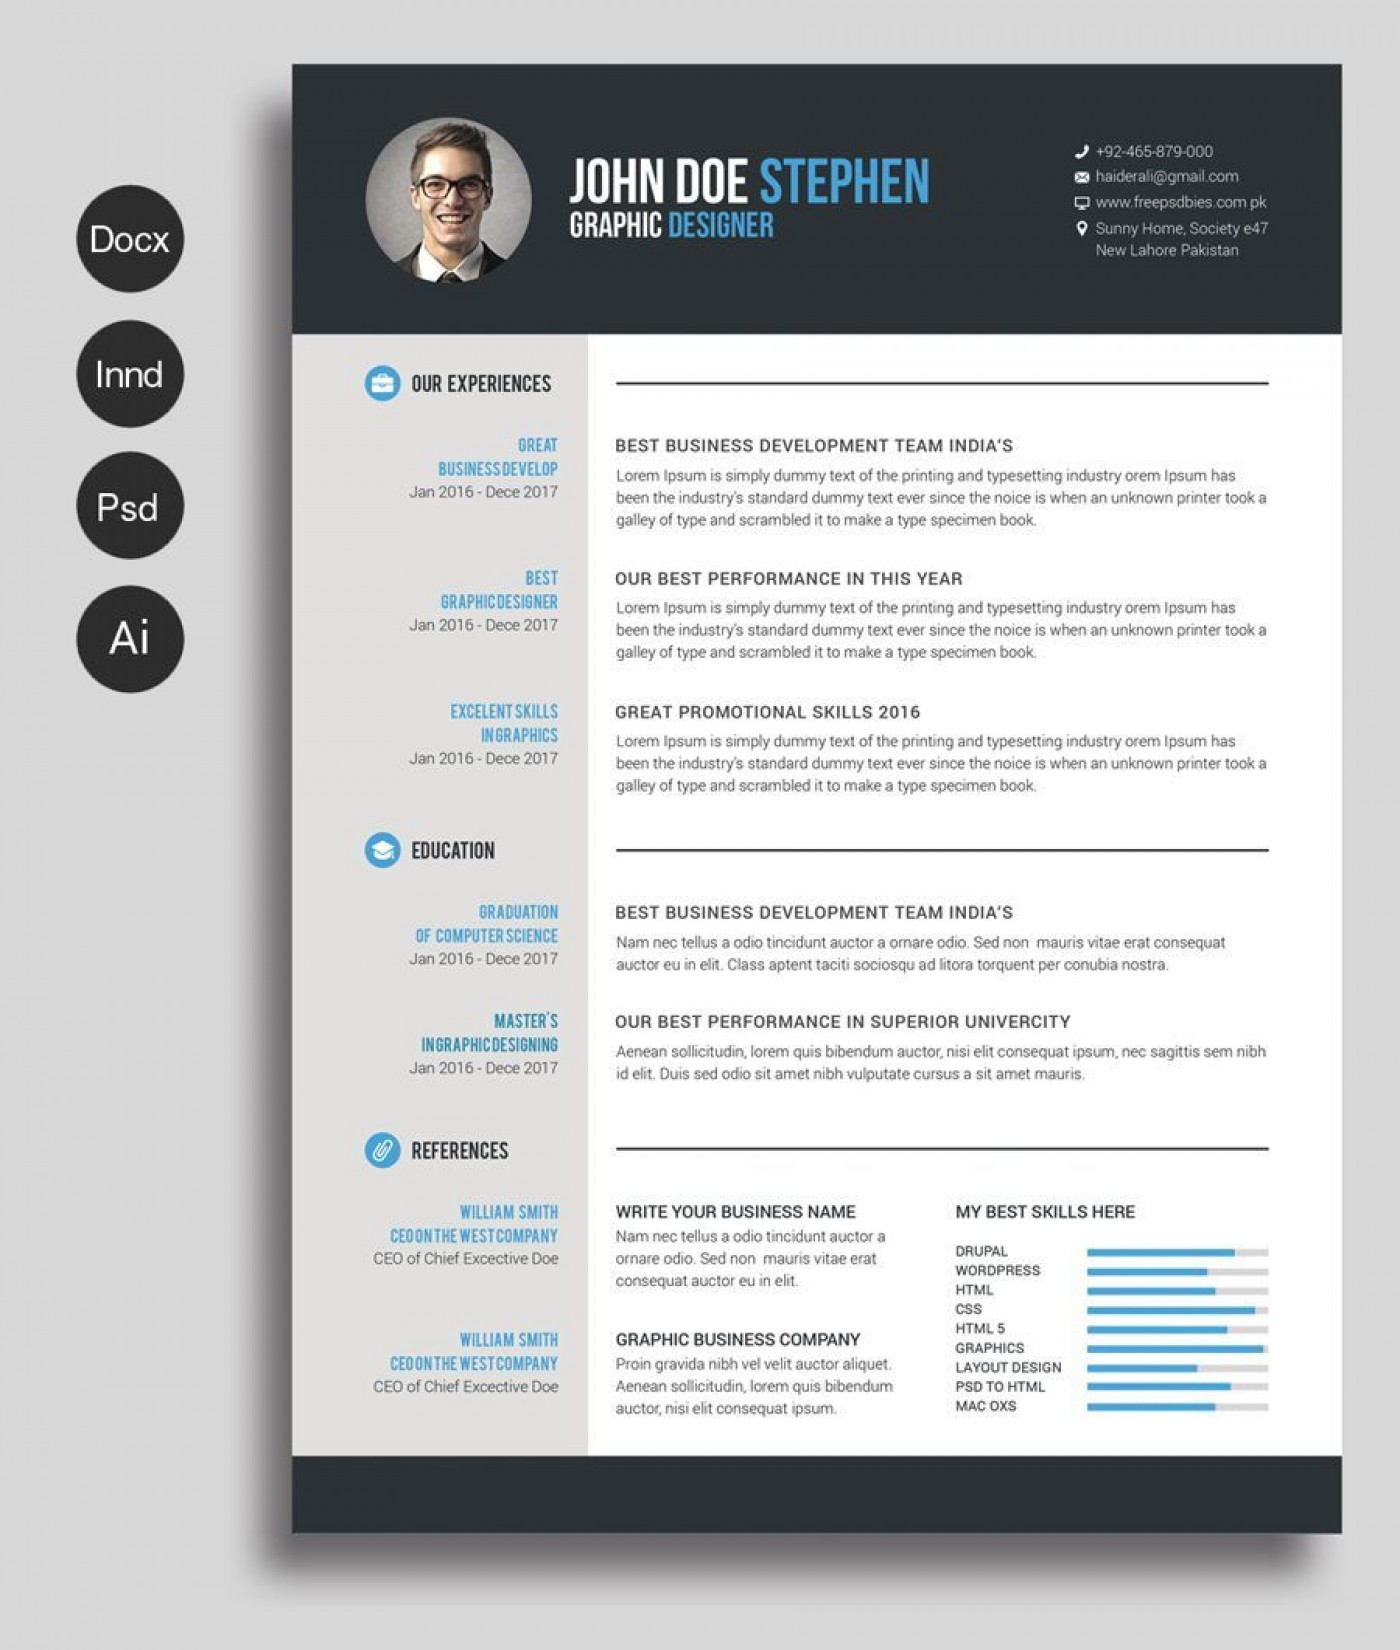 001 Striking Download Resume Template Microsoft Word High Resolution  Free 2007 2010 Creative For Fresher1400